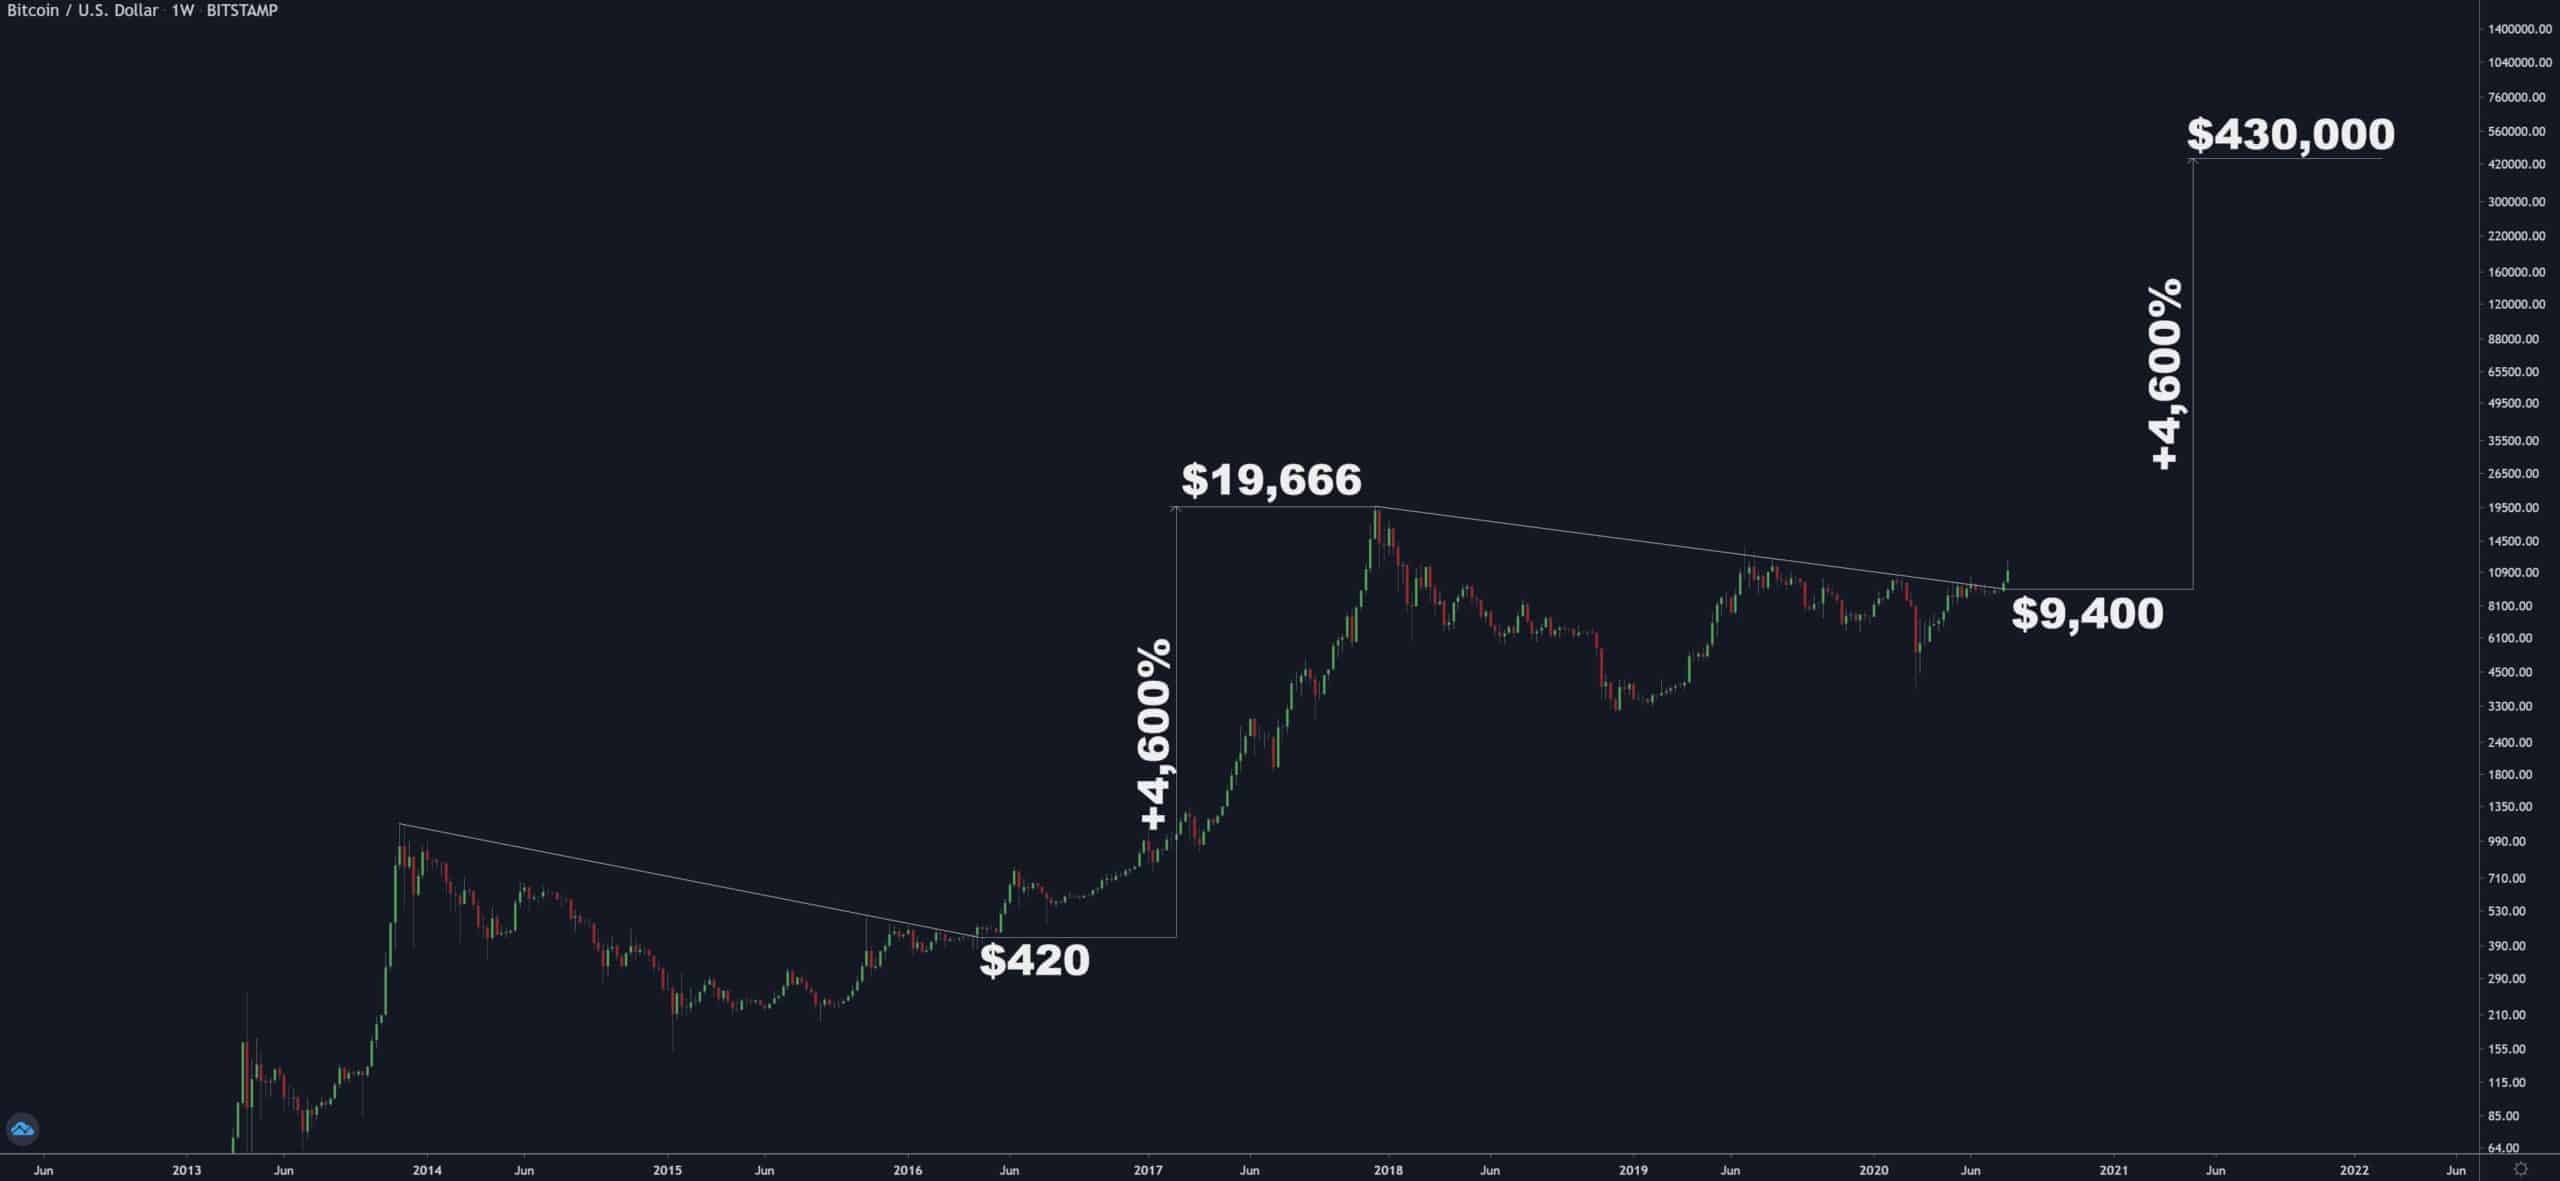 Bitcoin Price Cycles. Source: TradingView